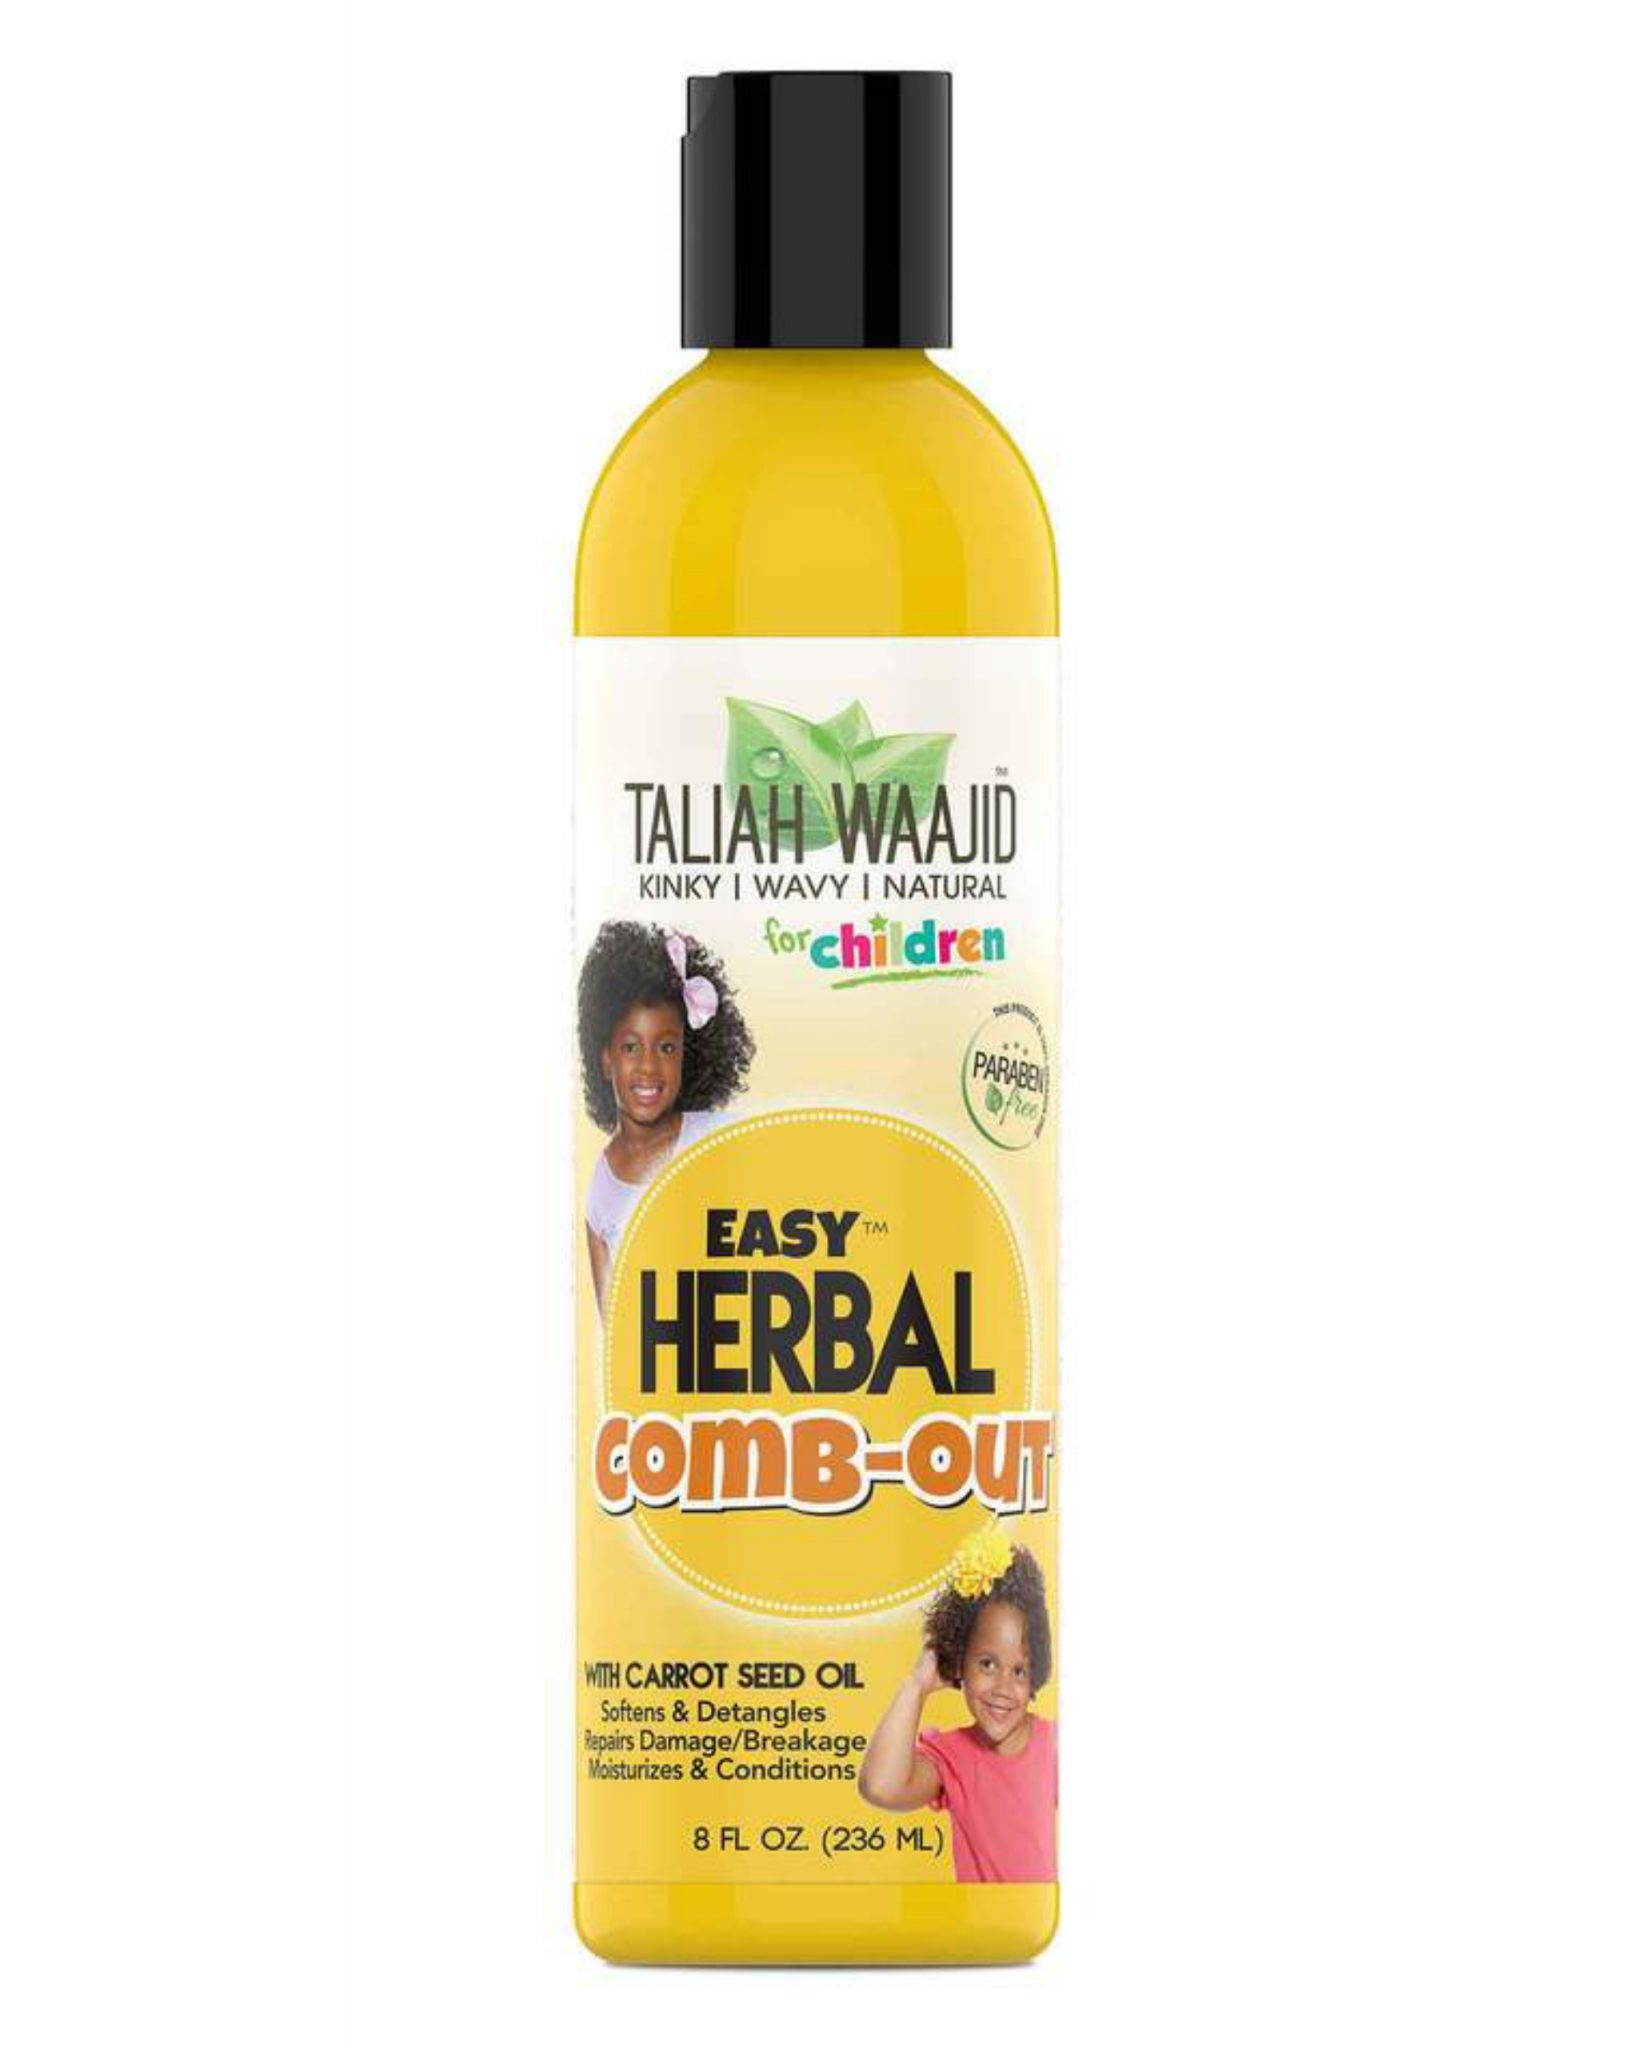 Taliah Waajid for Children Easy Herbal Comb-Out